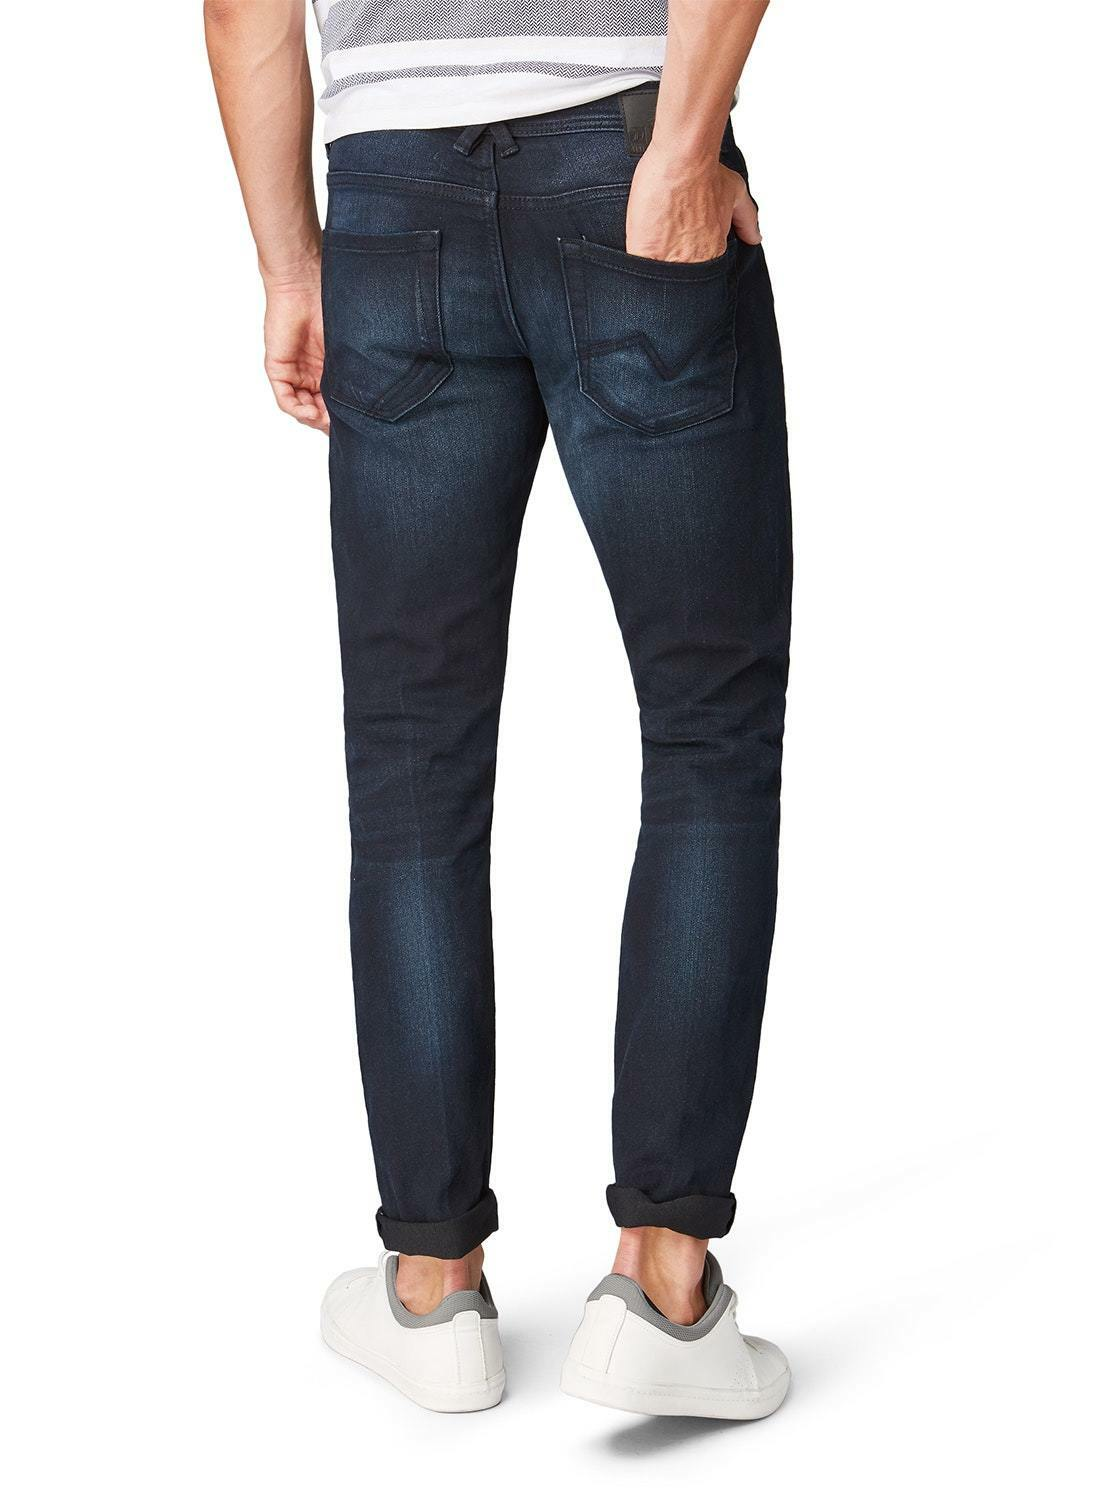 TOM TAILOR Denim für Männer Jeanshosen Piers Super Slim Jeans Blue Black Denim